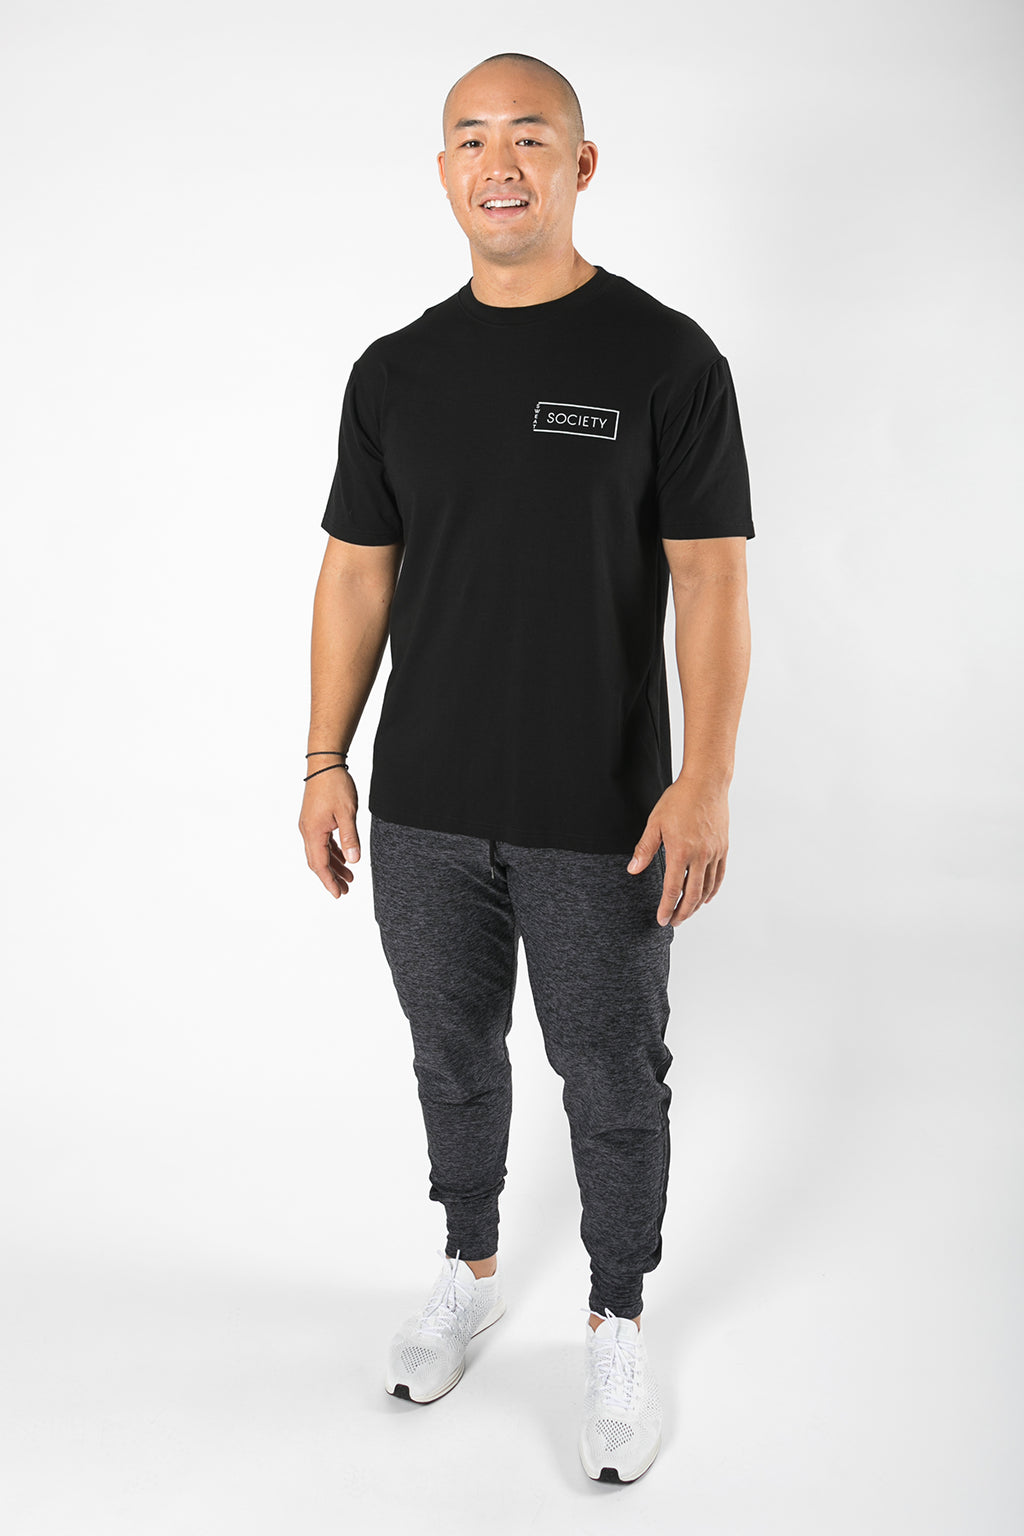 The Tony - Men's Bamboo Tee